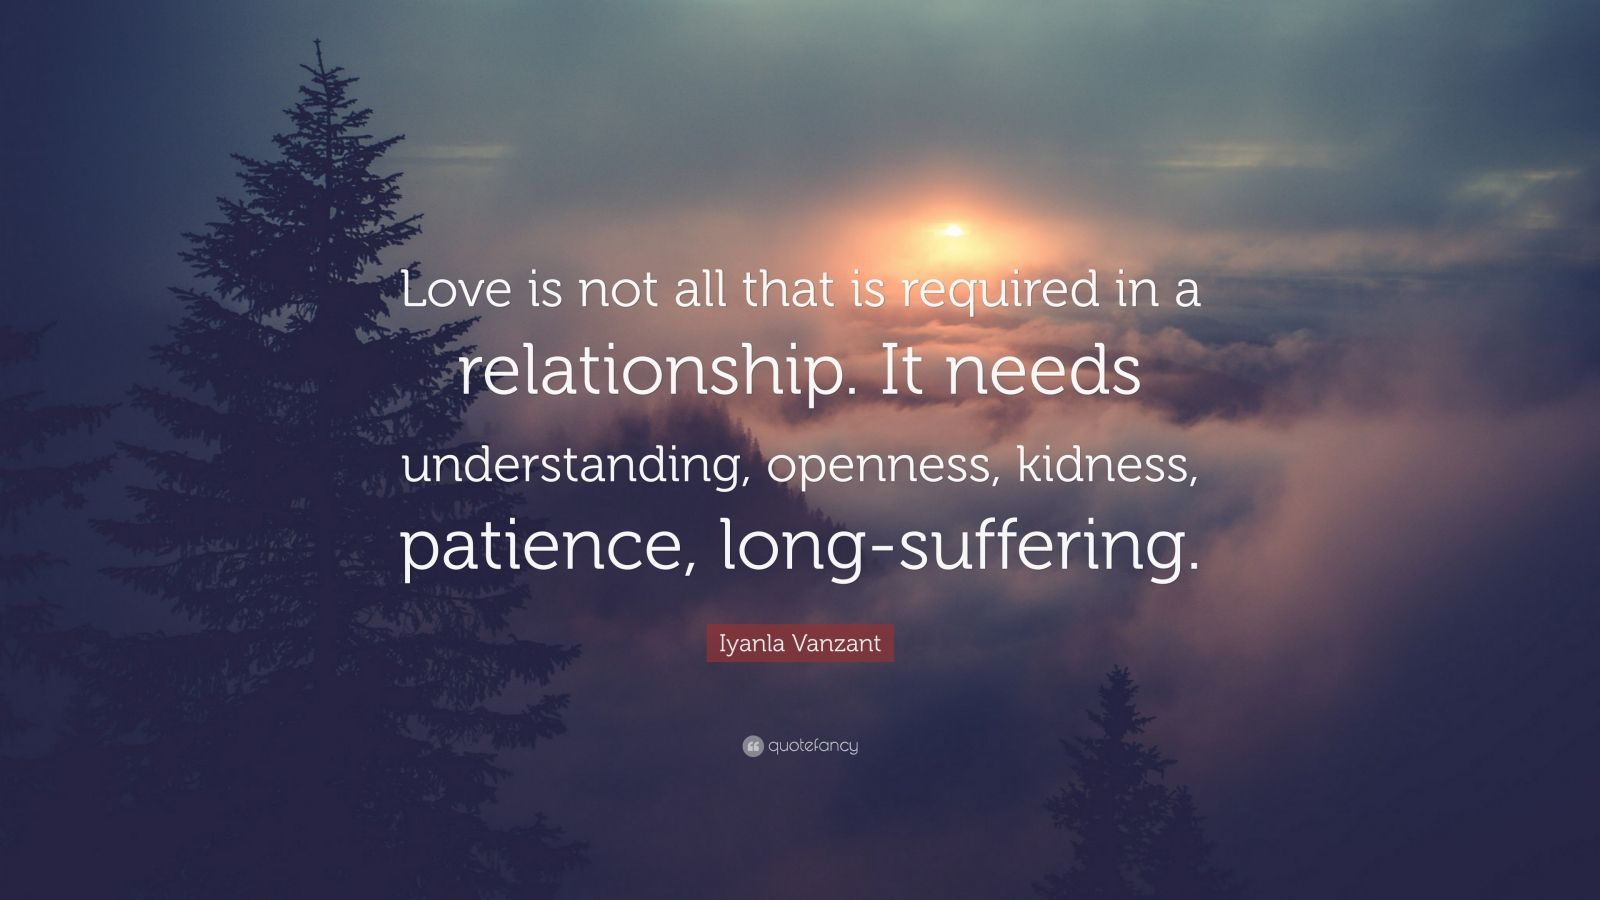 "Iyanla Vanzant Quote: ""Love is not all that is required in a relationship. It needs understanding, openness, kidness, patience, long-suffering."""